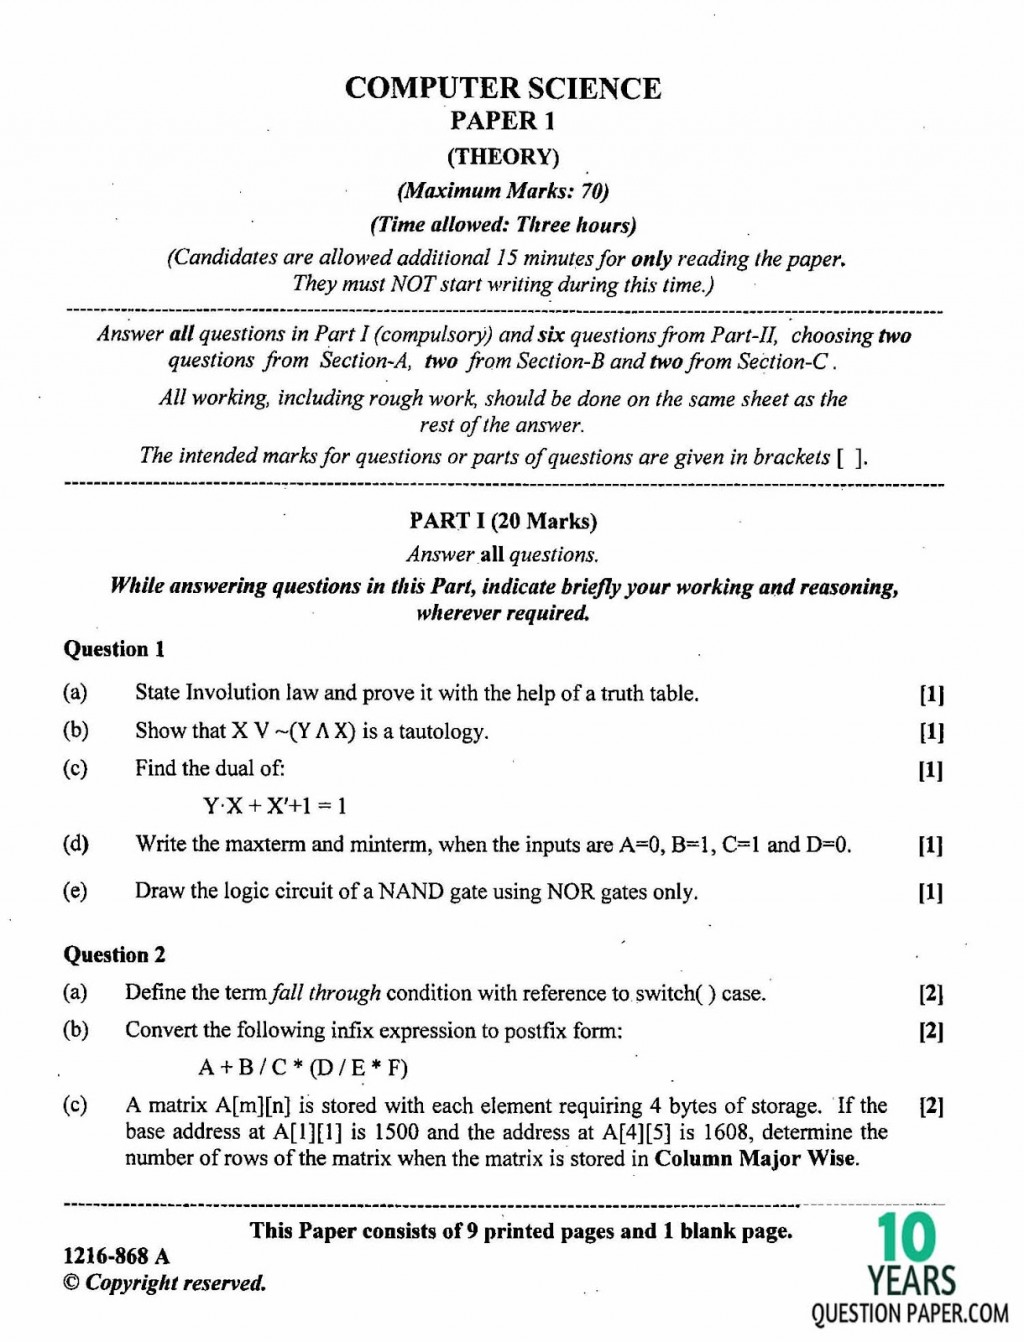 018 Research Paper Computer Science Papers Free Isc Science2b Theory Class Xii Board Question Breathtaking Download Pdf Large